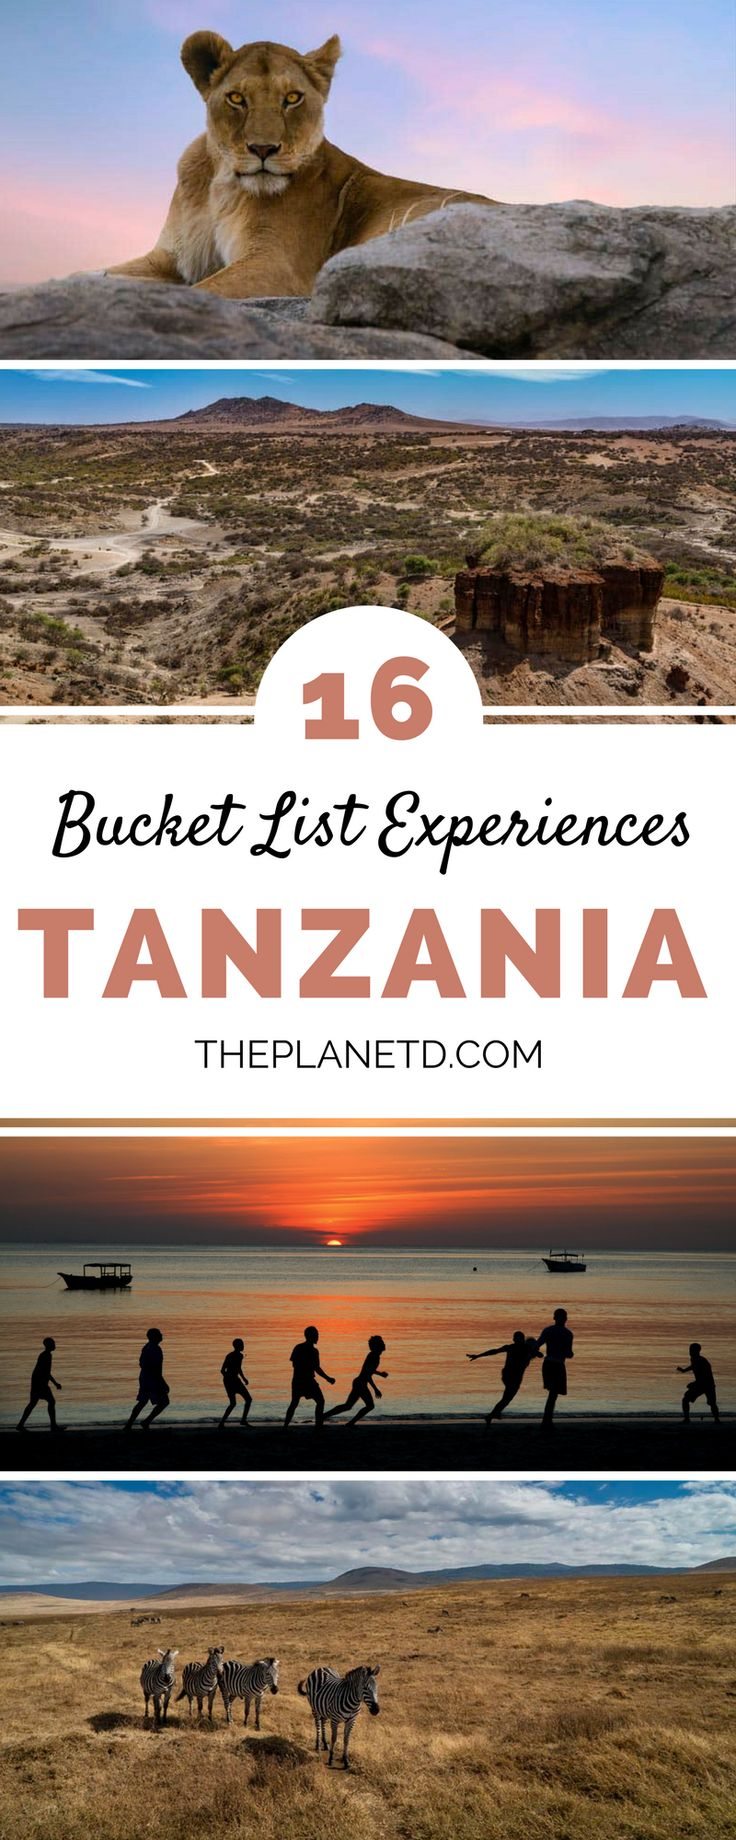 While the Serengeti is the star attraction, there are many things to do in Tanzania besides viewing the wildlife. Here are 16 of our favorite adventurous things to do in Tanzania ranging from the summiting Mt Kilimanjaro to diving in Zanzibar to taking a balloon safari in the Serengeti. Travel in Africa. | Blog by the Planet D #Tanzania #Africa